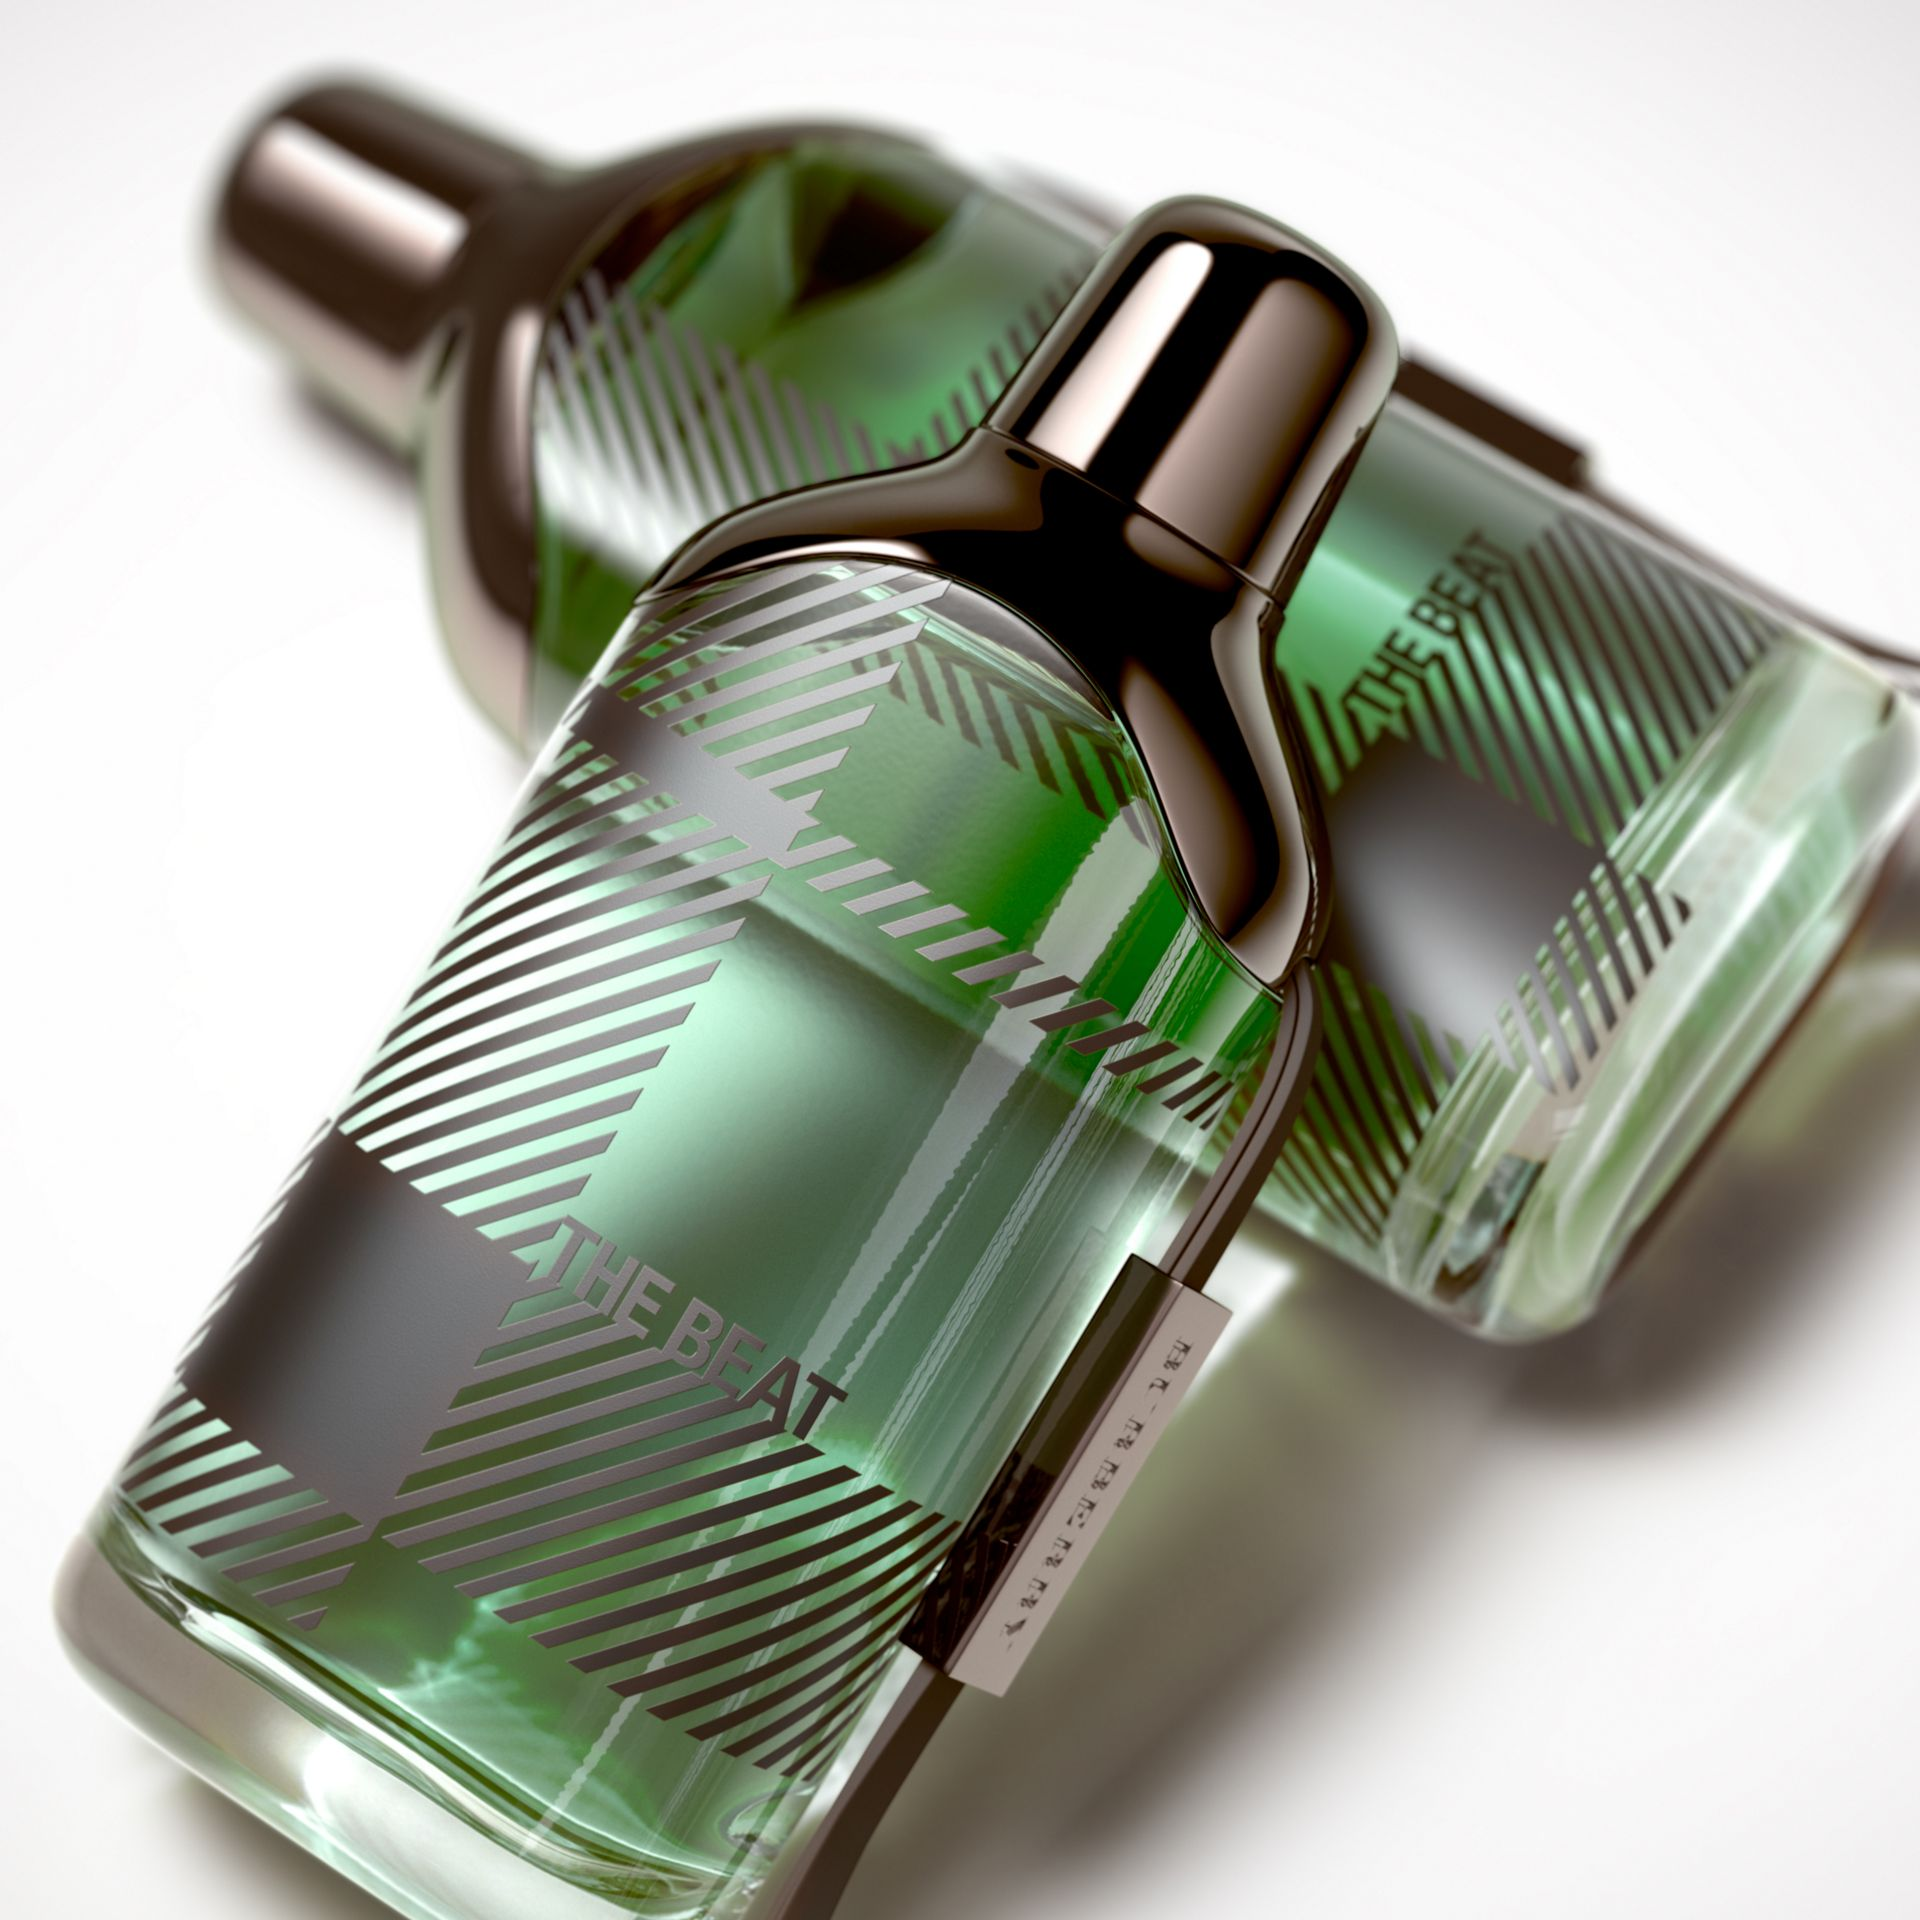 Burberry The Beat Eau de Toilette 50 ml - Galerie-Bild 2